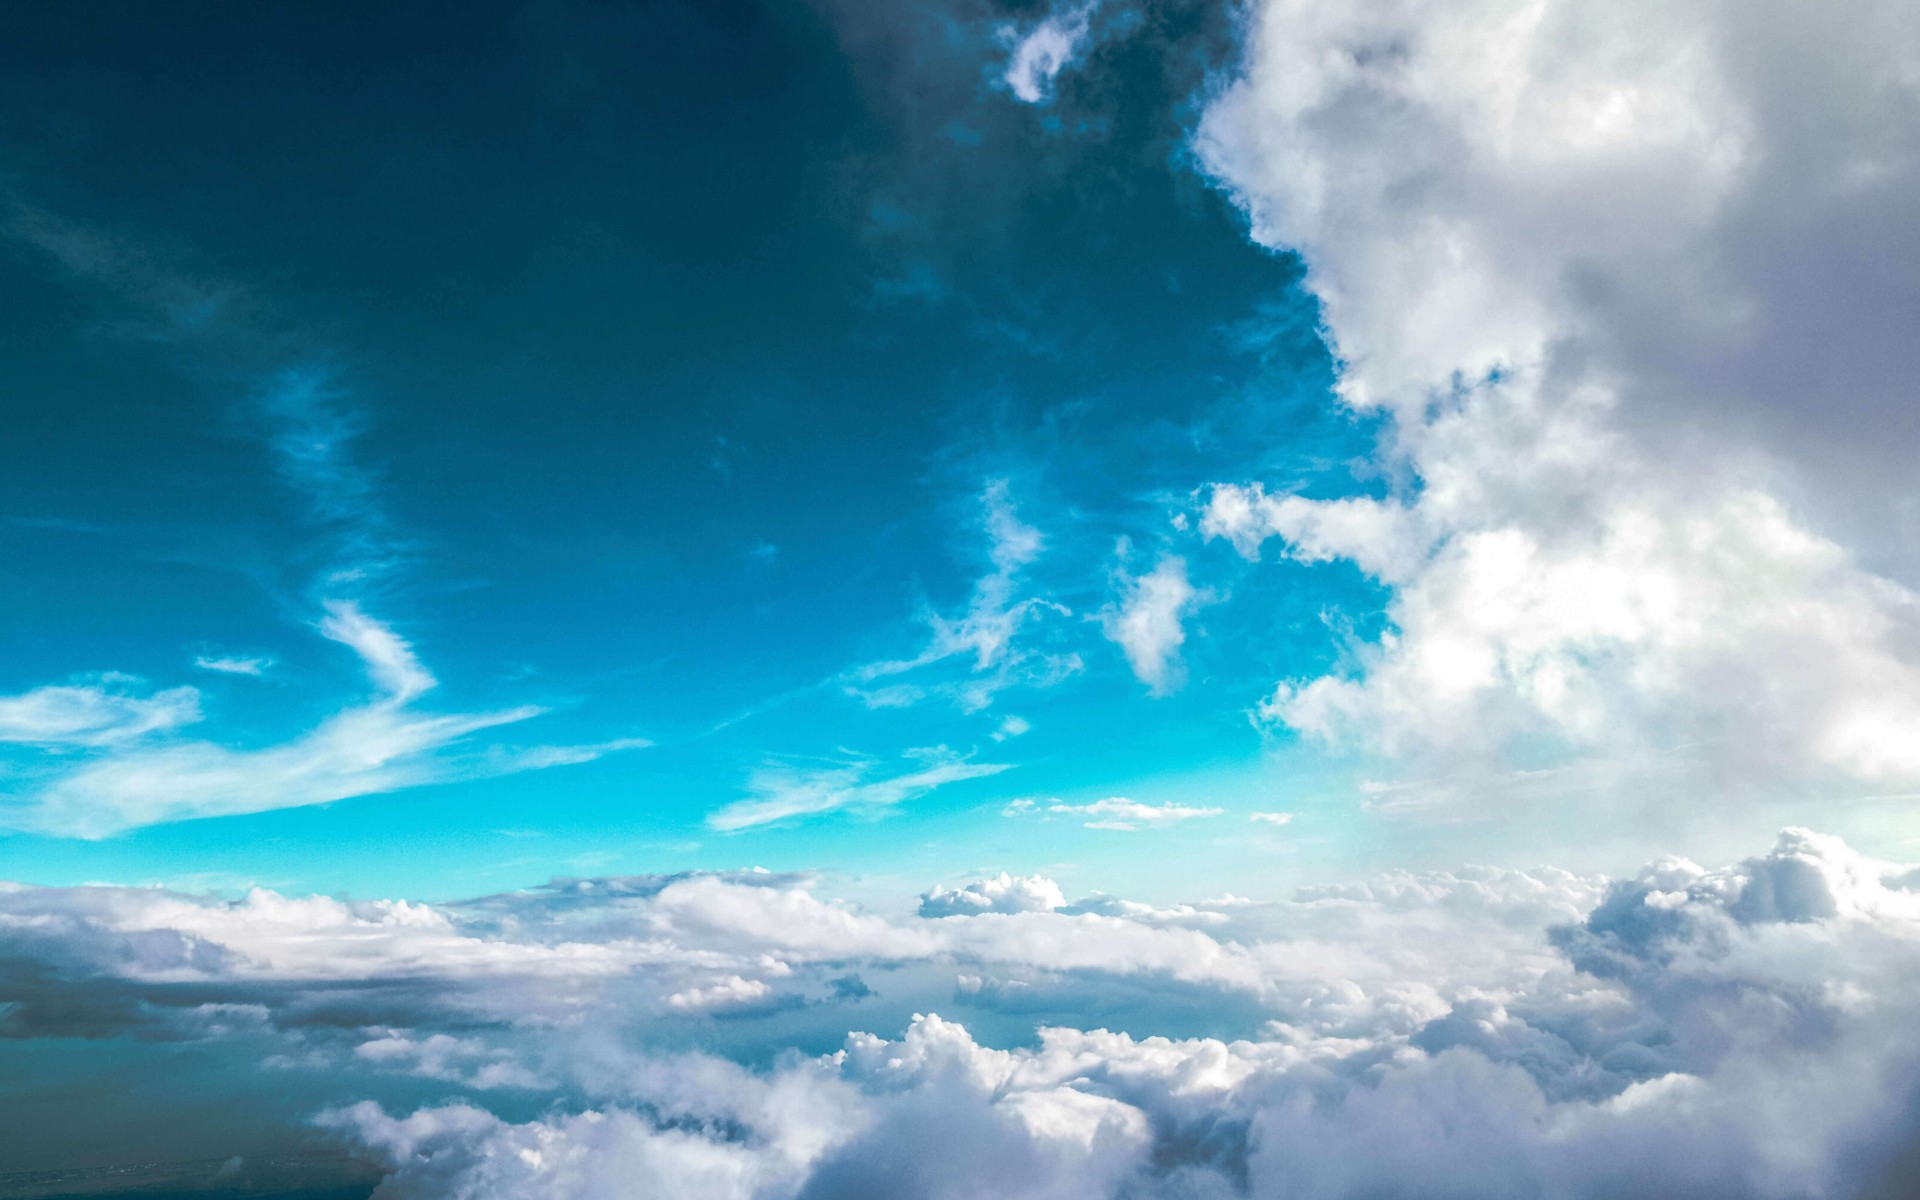 Cloudy Blue Sky Wallpaper for Desktop 1920x1200